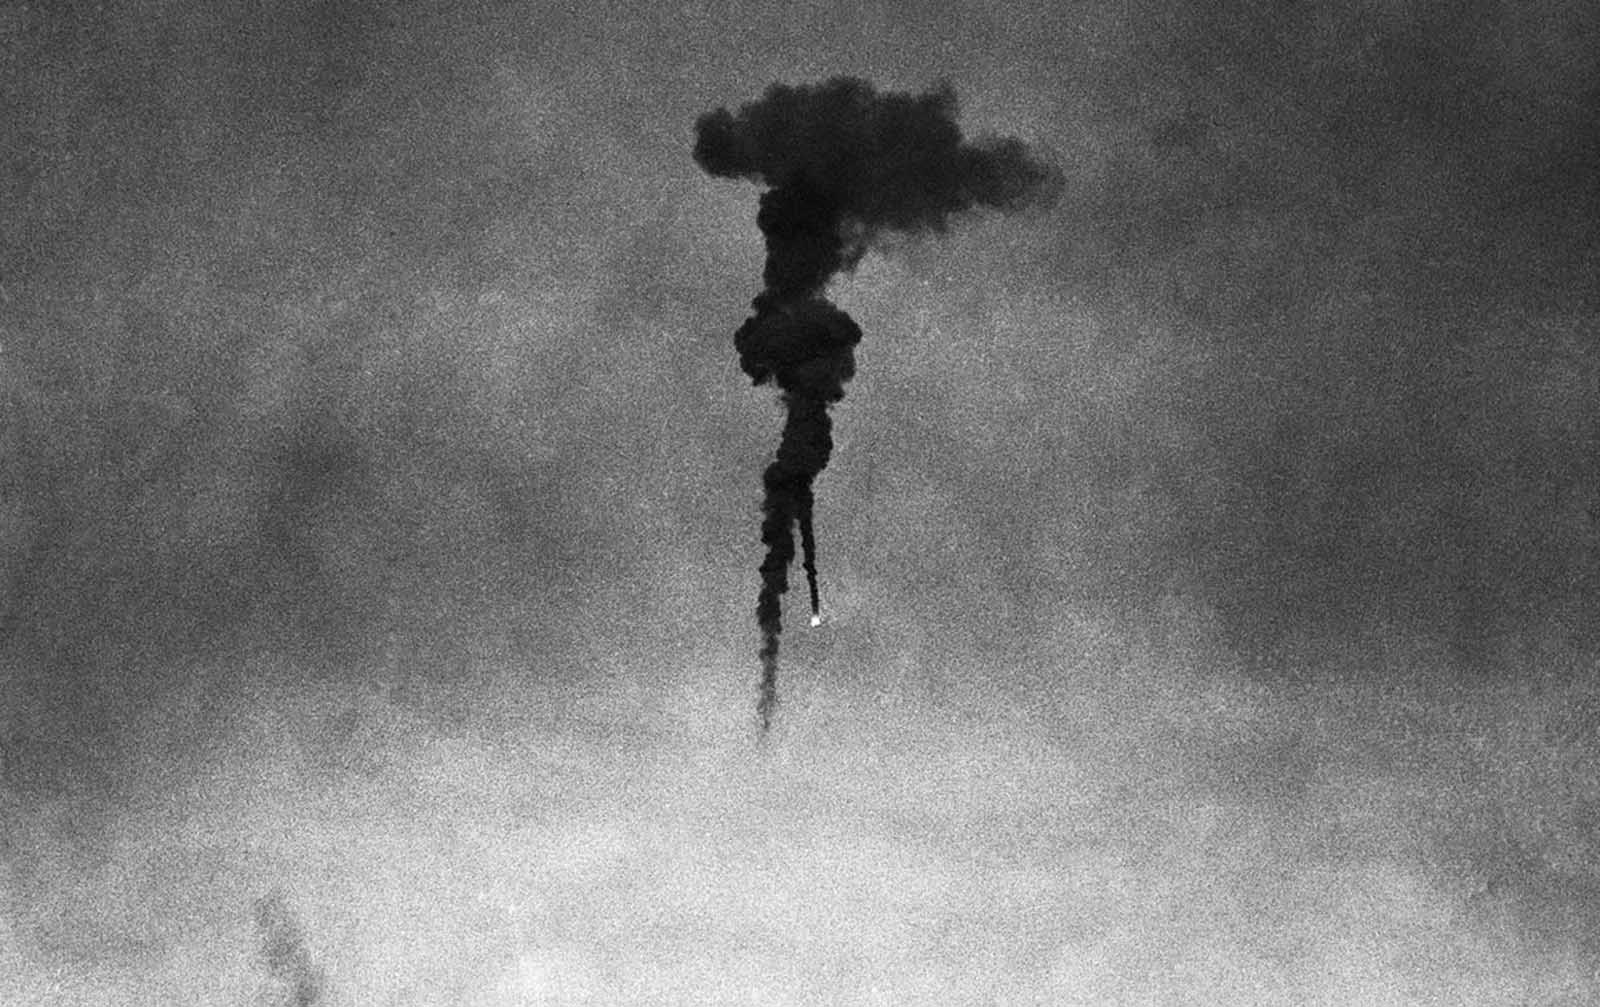 Two barrage balloons come down in flames after being shot by German war planes during an aerial attack over the Kent coast in England, on August 30, 1940.